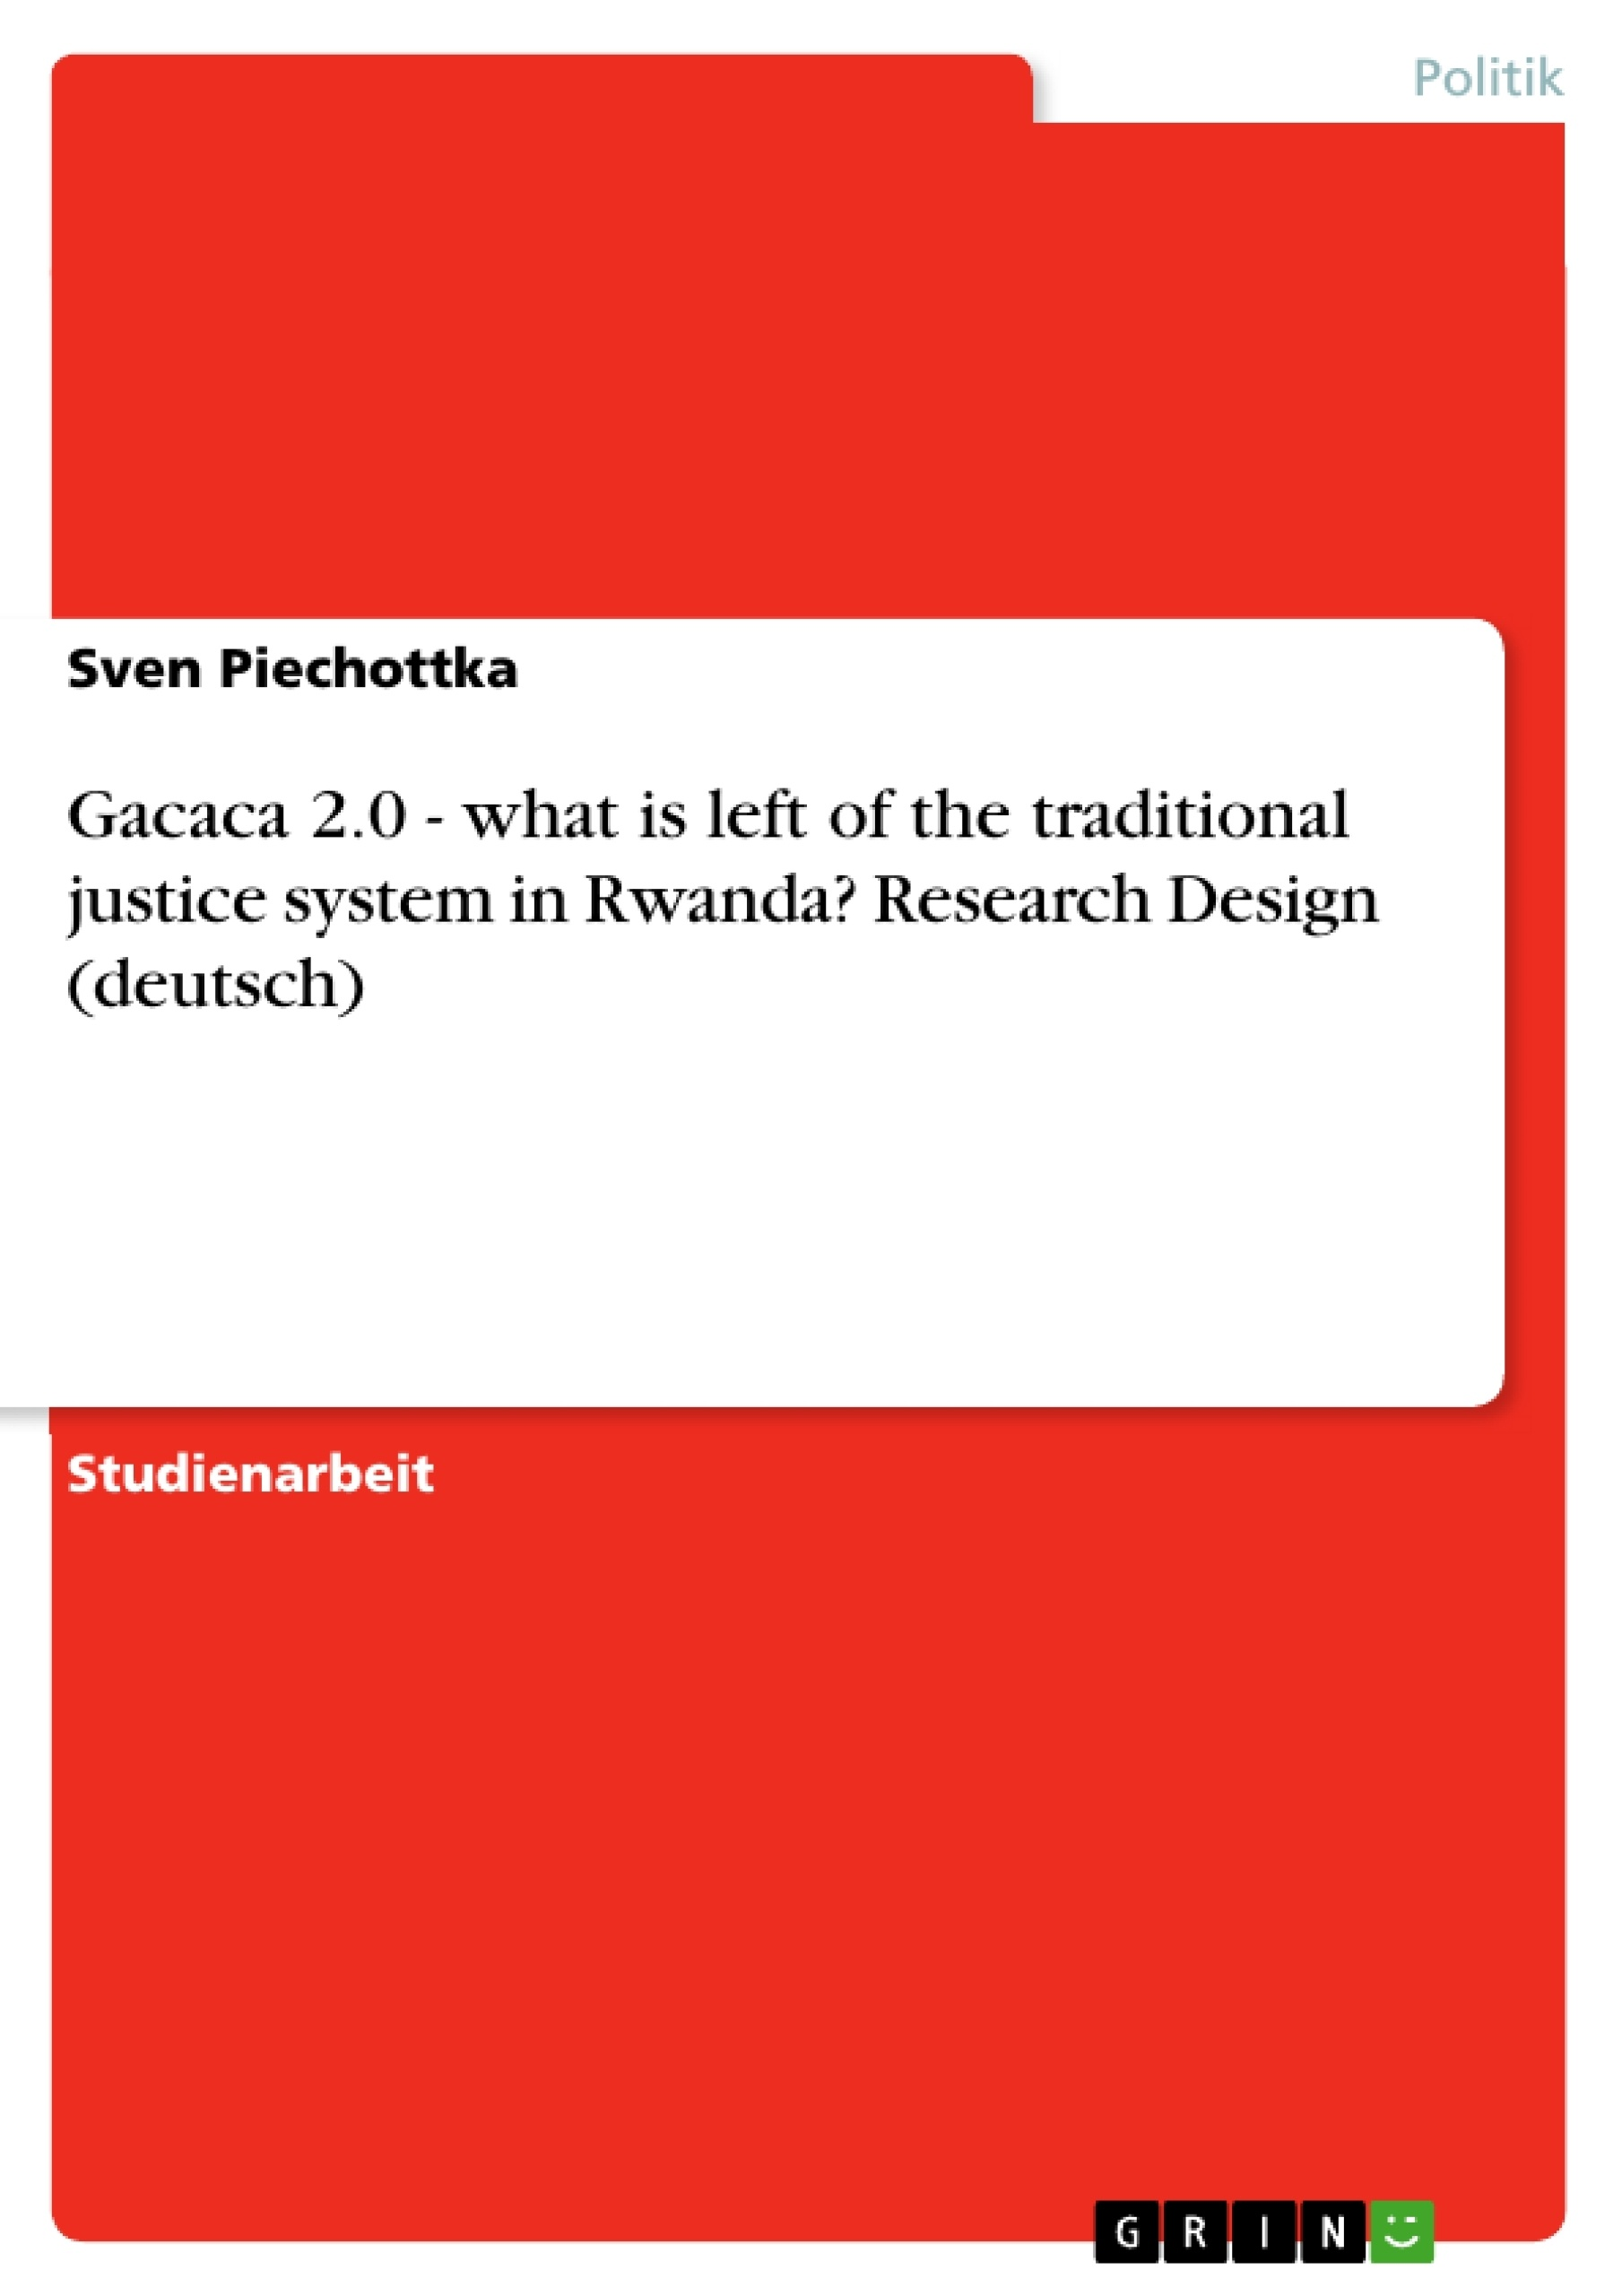 Titel: Gacaca 2.0 - what is left of the traditional justice system in Rwanda? Research Design (deutsch)